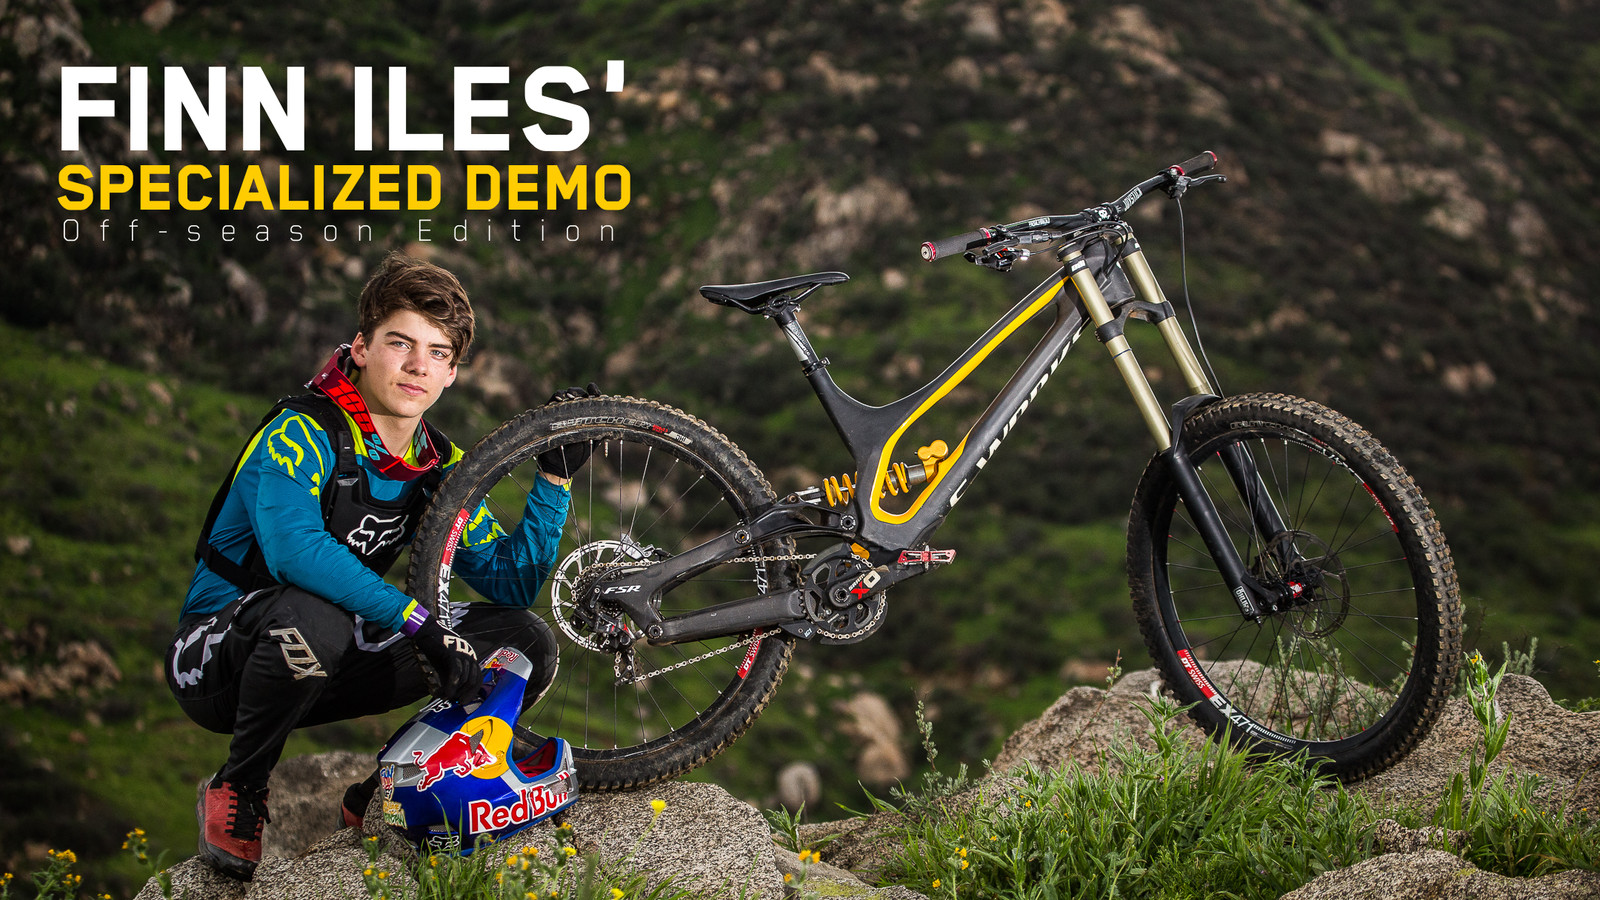 Finn Iles' Specialized S-Works Demo 8